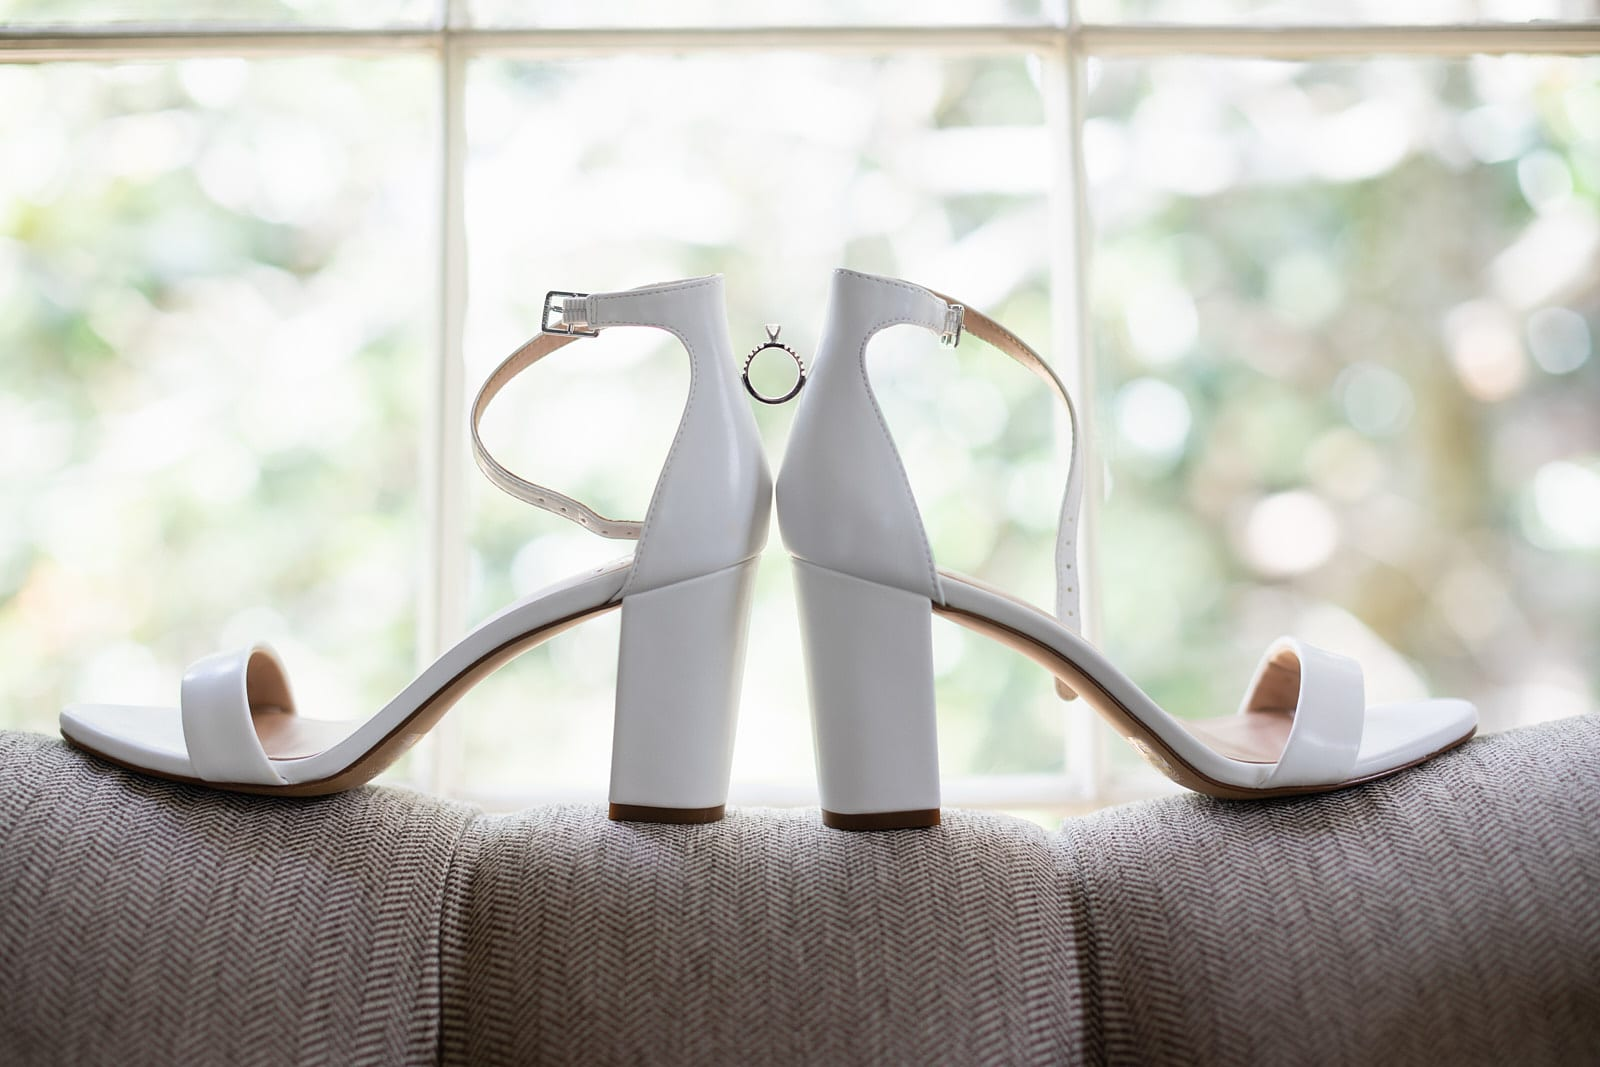 wedding ring placed on bride shoes